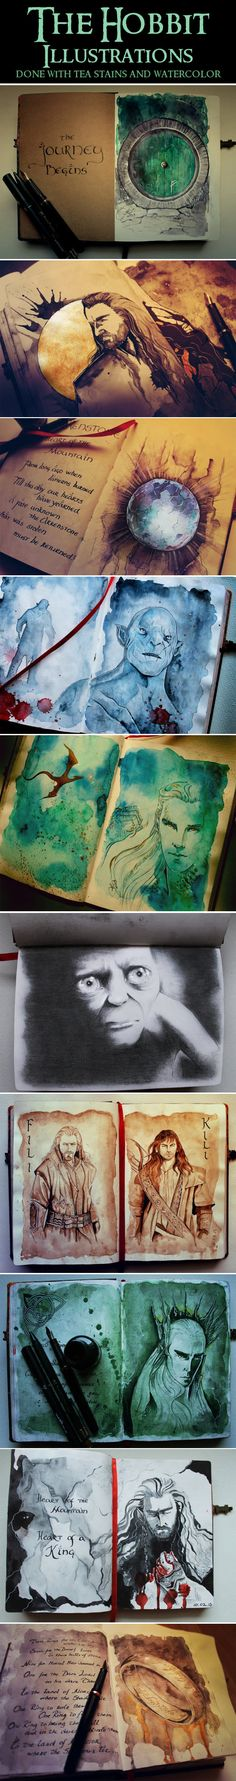 The Hobbit: Illustrations